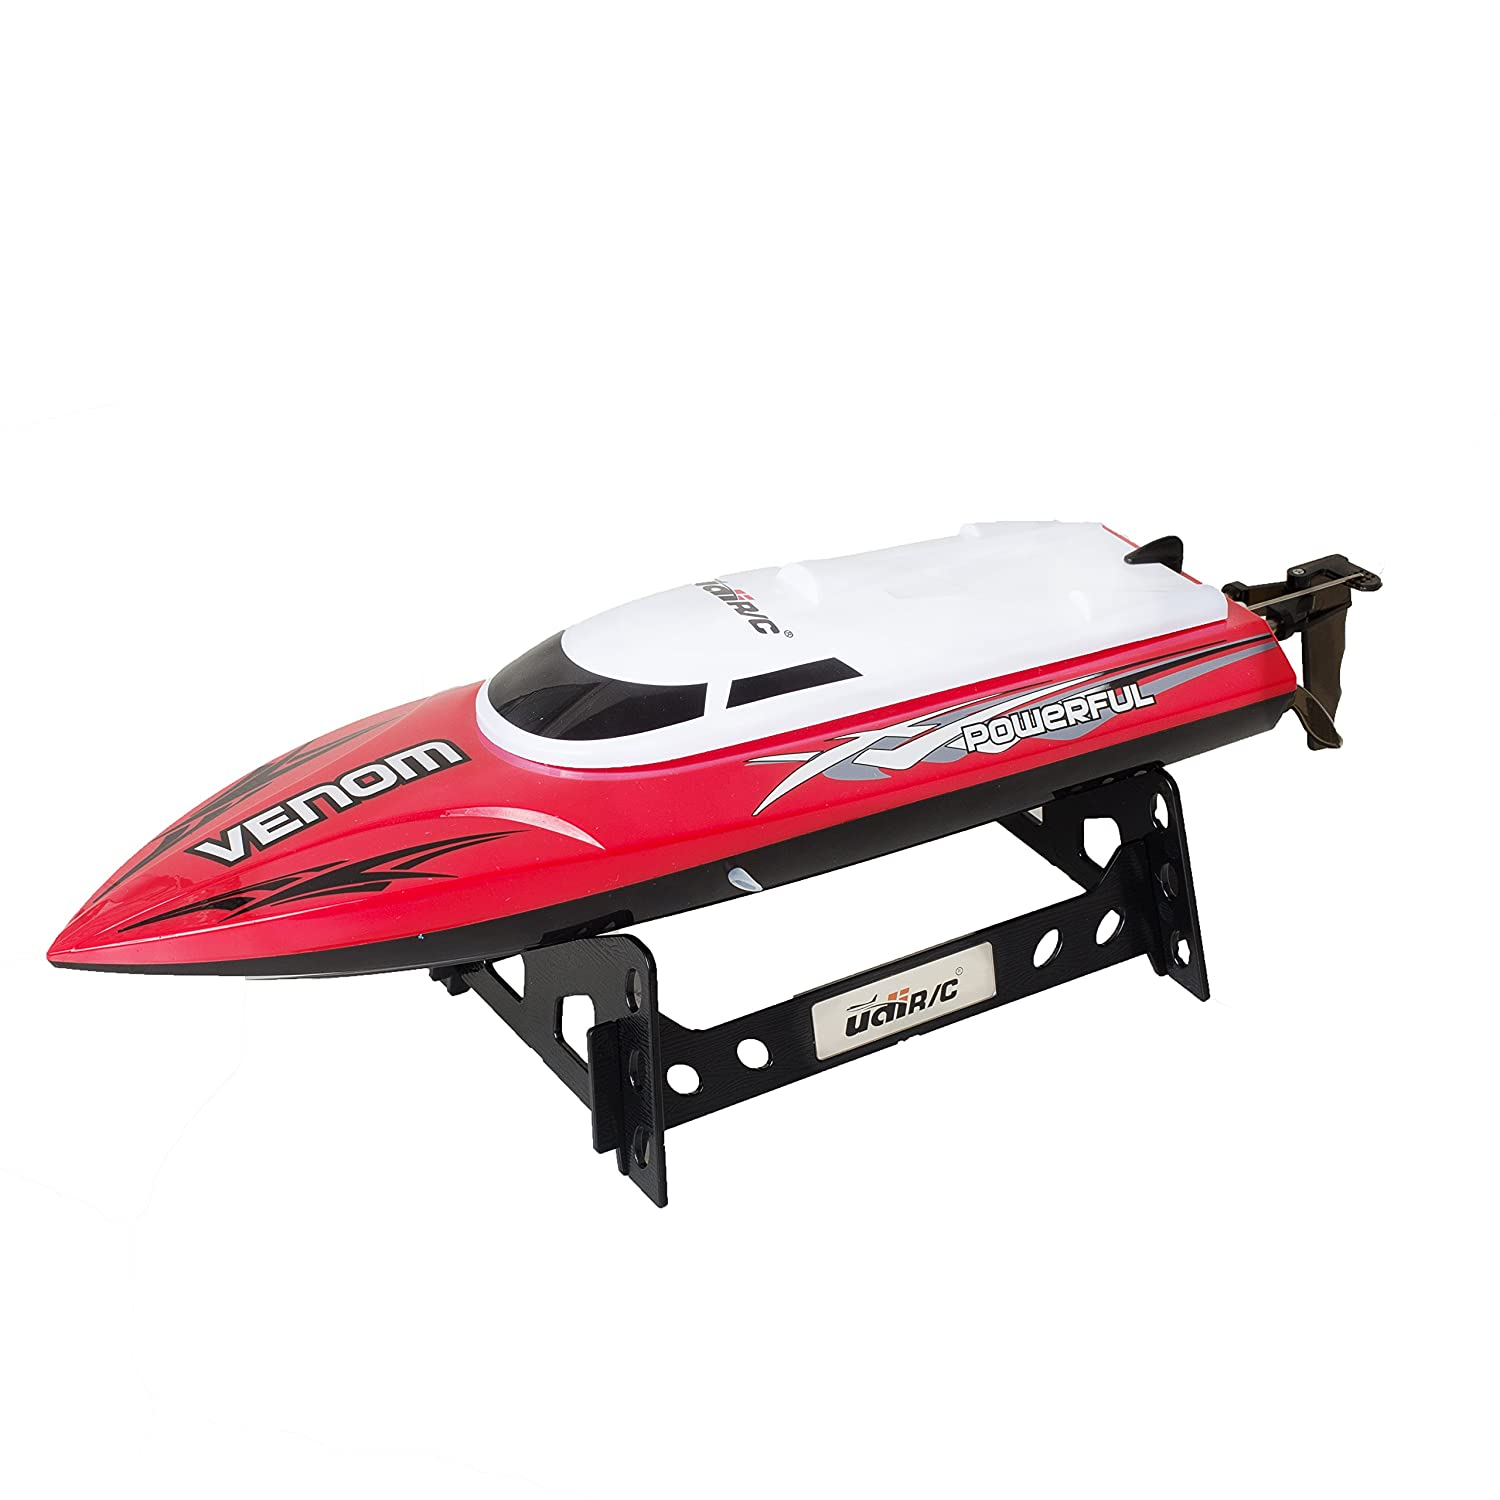 The Best RC Boat 1